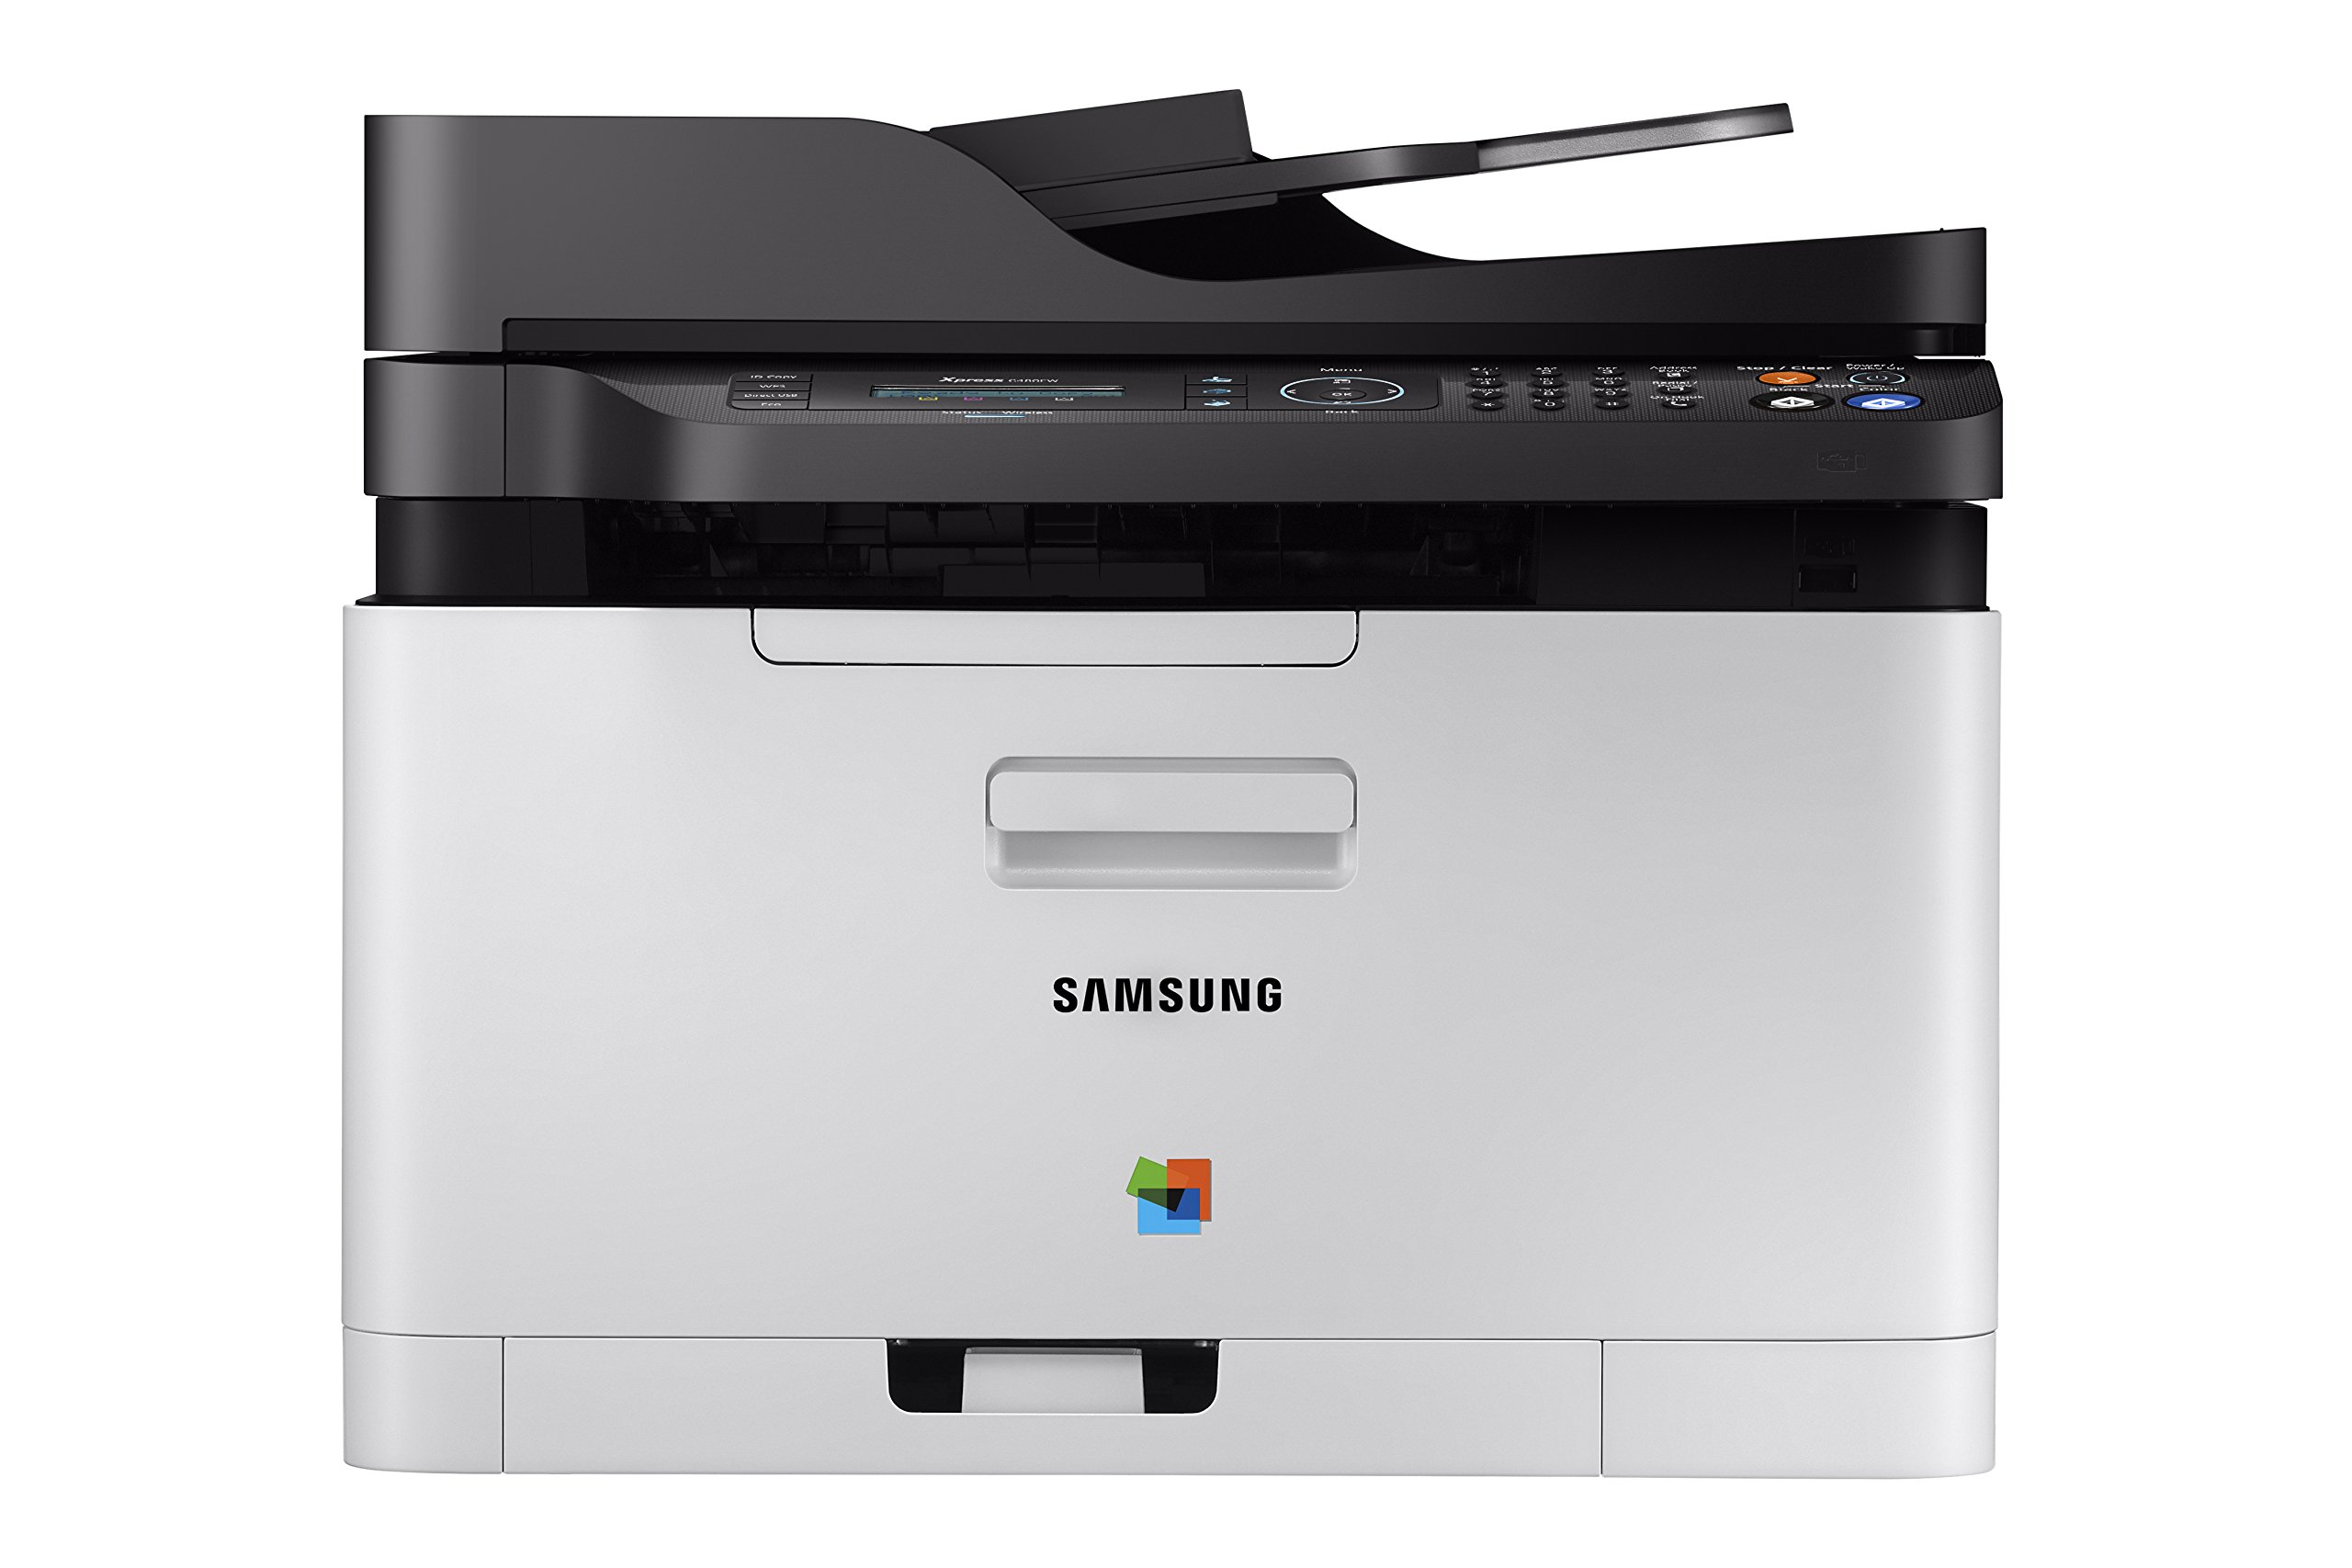 Samsung Electronics Xpress SL-C480FW/XAA Wireless Color Printer with Scanner, Copier & Fax, Amazon Dash Replenishment Enabled by Samsung